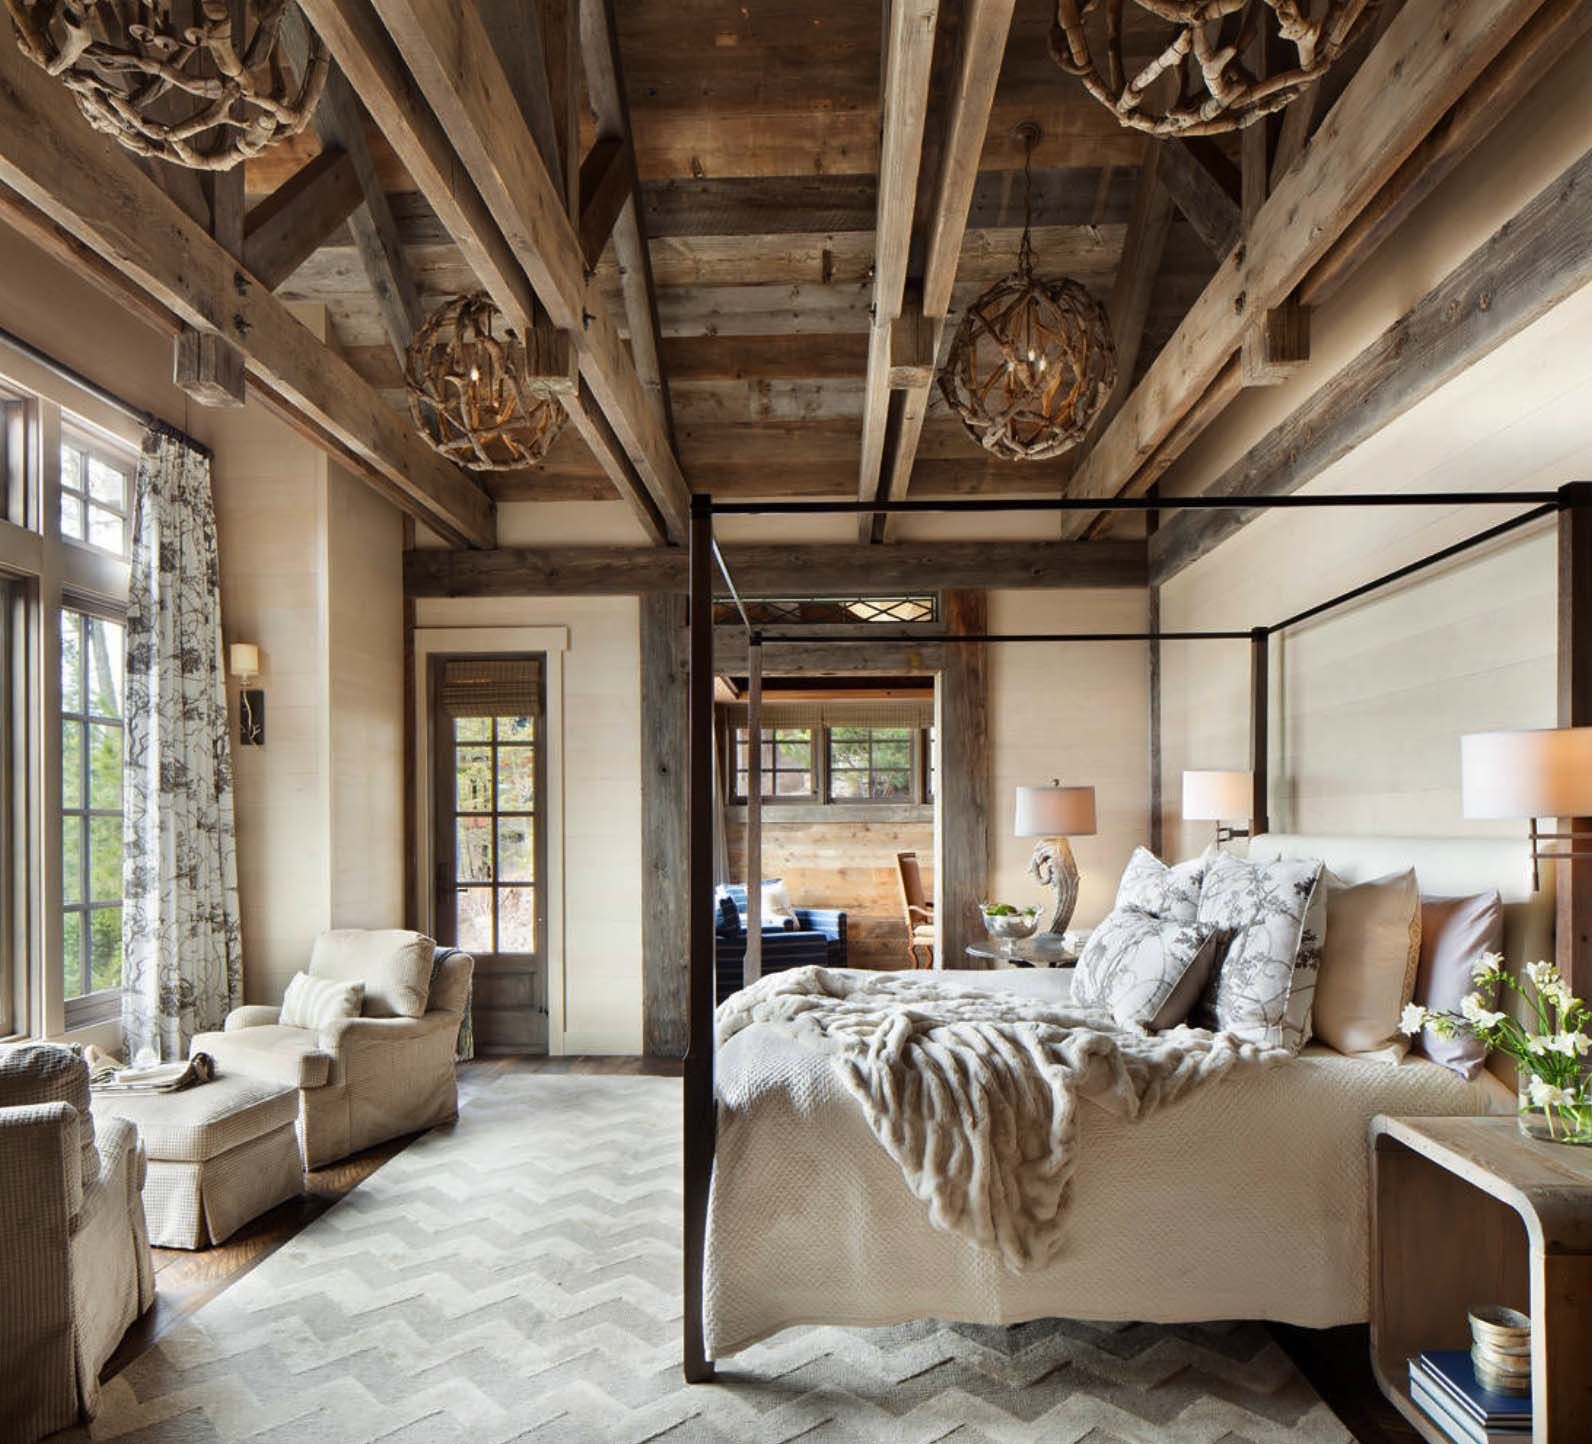 40 Amazing Rustic Bedrooms Styled To Feel Like A Cozy Getaway Modern Rustic Bedrooms Rustic Bedroom Design Rustic Style Bedroom